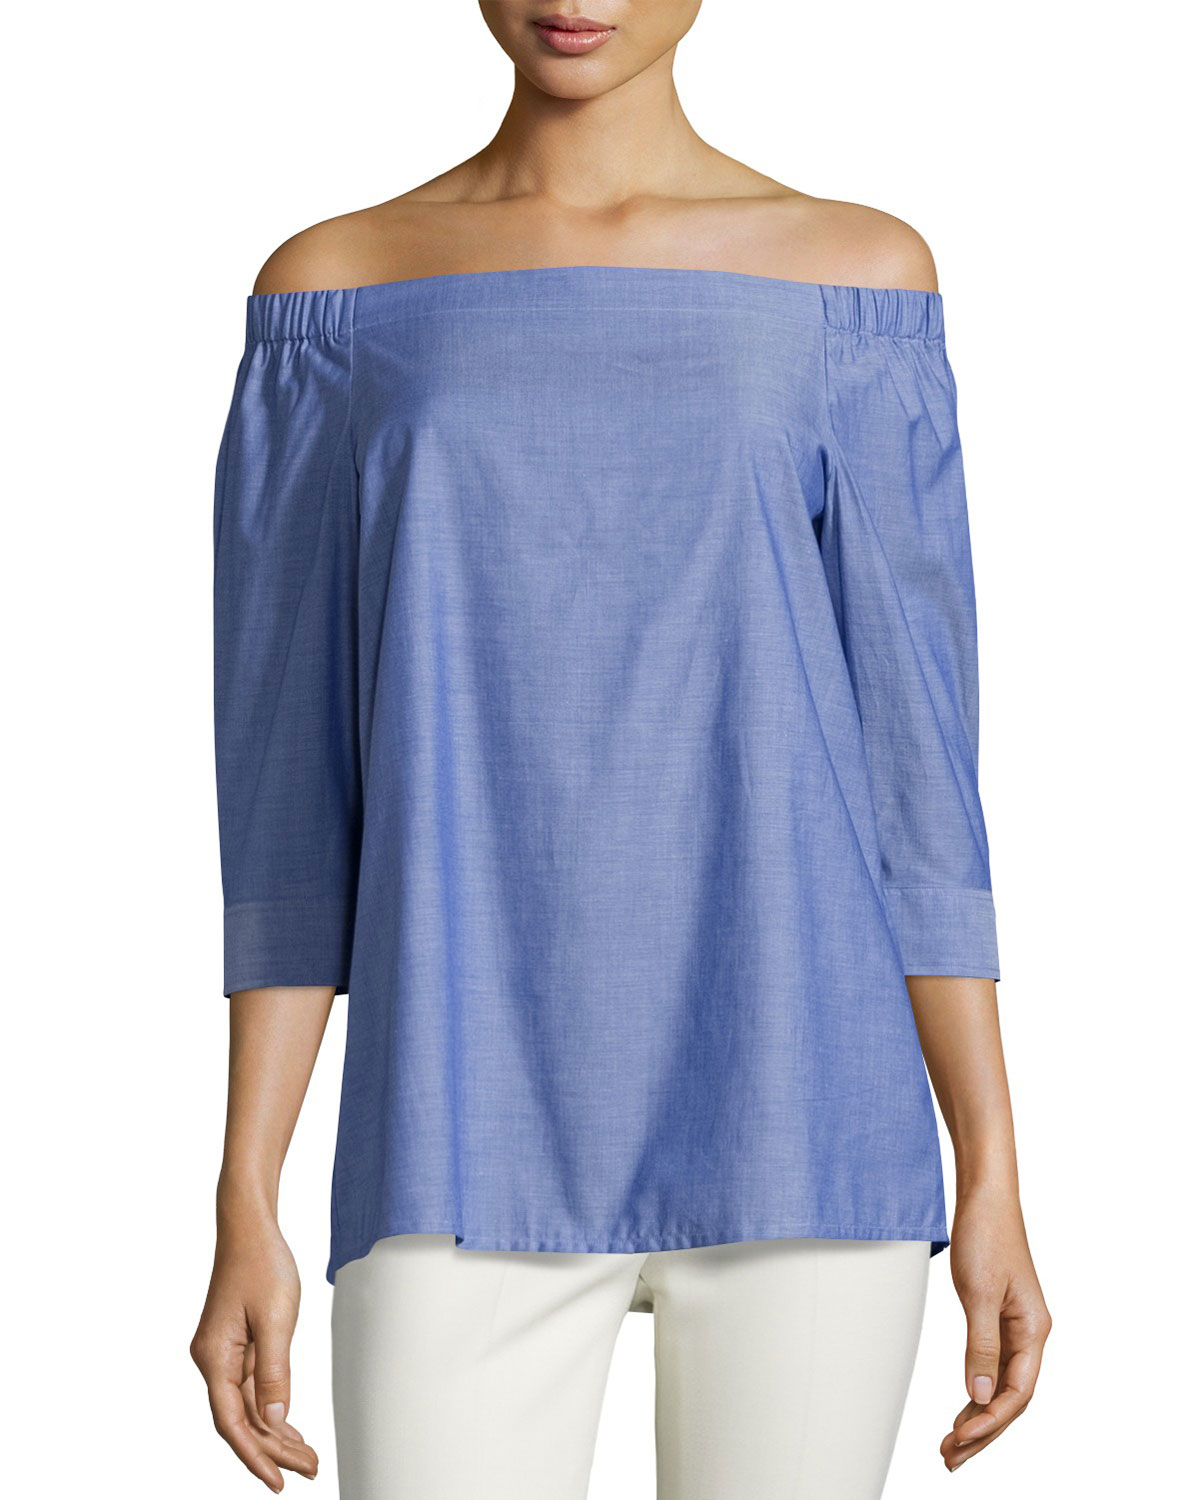 3a978259e4f5 Lyst - Theory Joscla Icon Off-the-shoulder Top in Blue